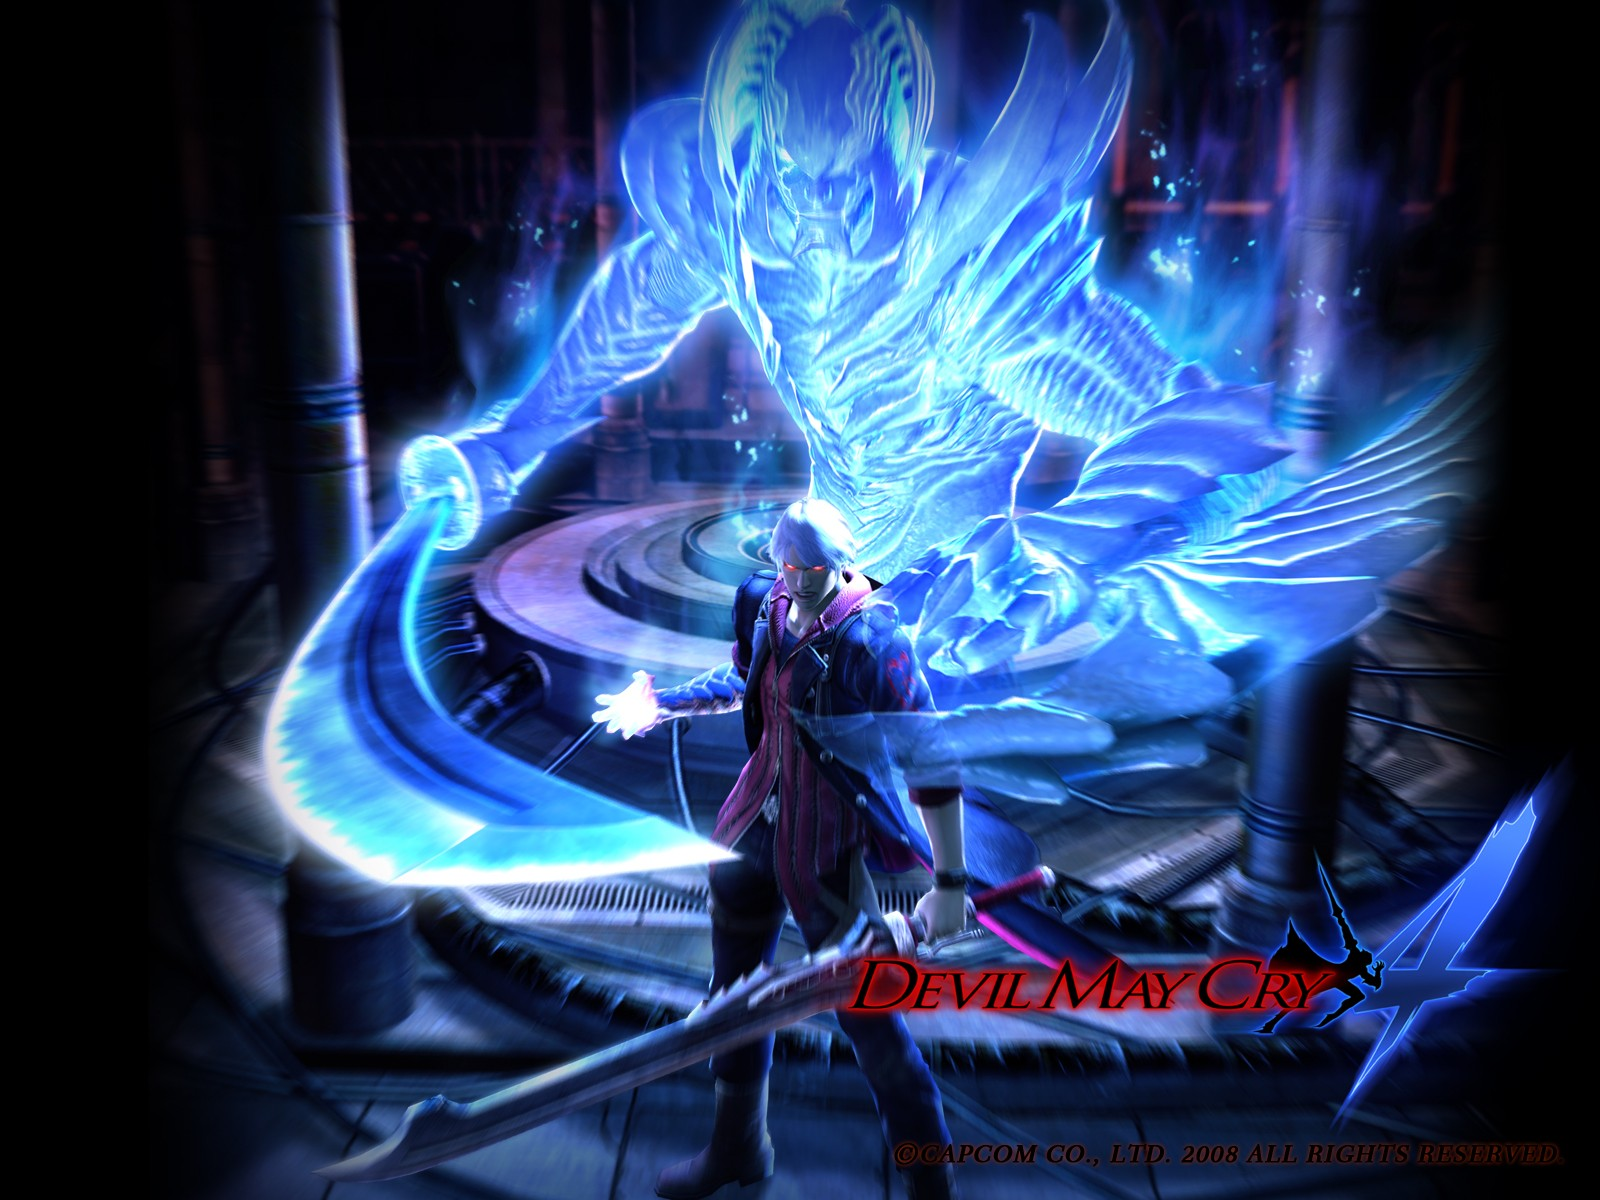 http://3.bp.blogspot.com/-c-dRyzAKqZI/T-0yV2U7nZI/AAAAAAAAAPI/2tOicrJyMI4/s1600/devil-may-cry-4-wallpaper-wp20080208-1.jpg